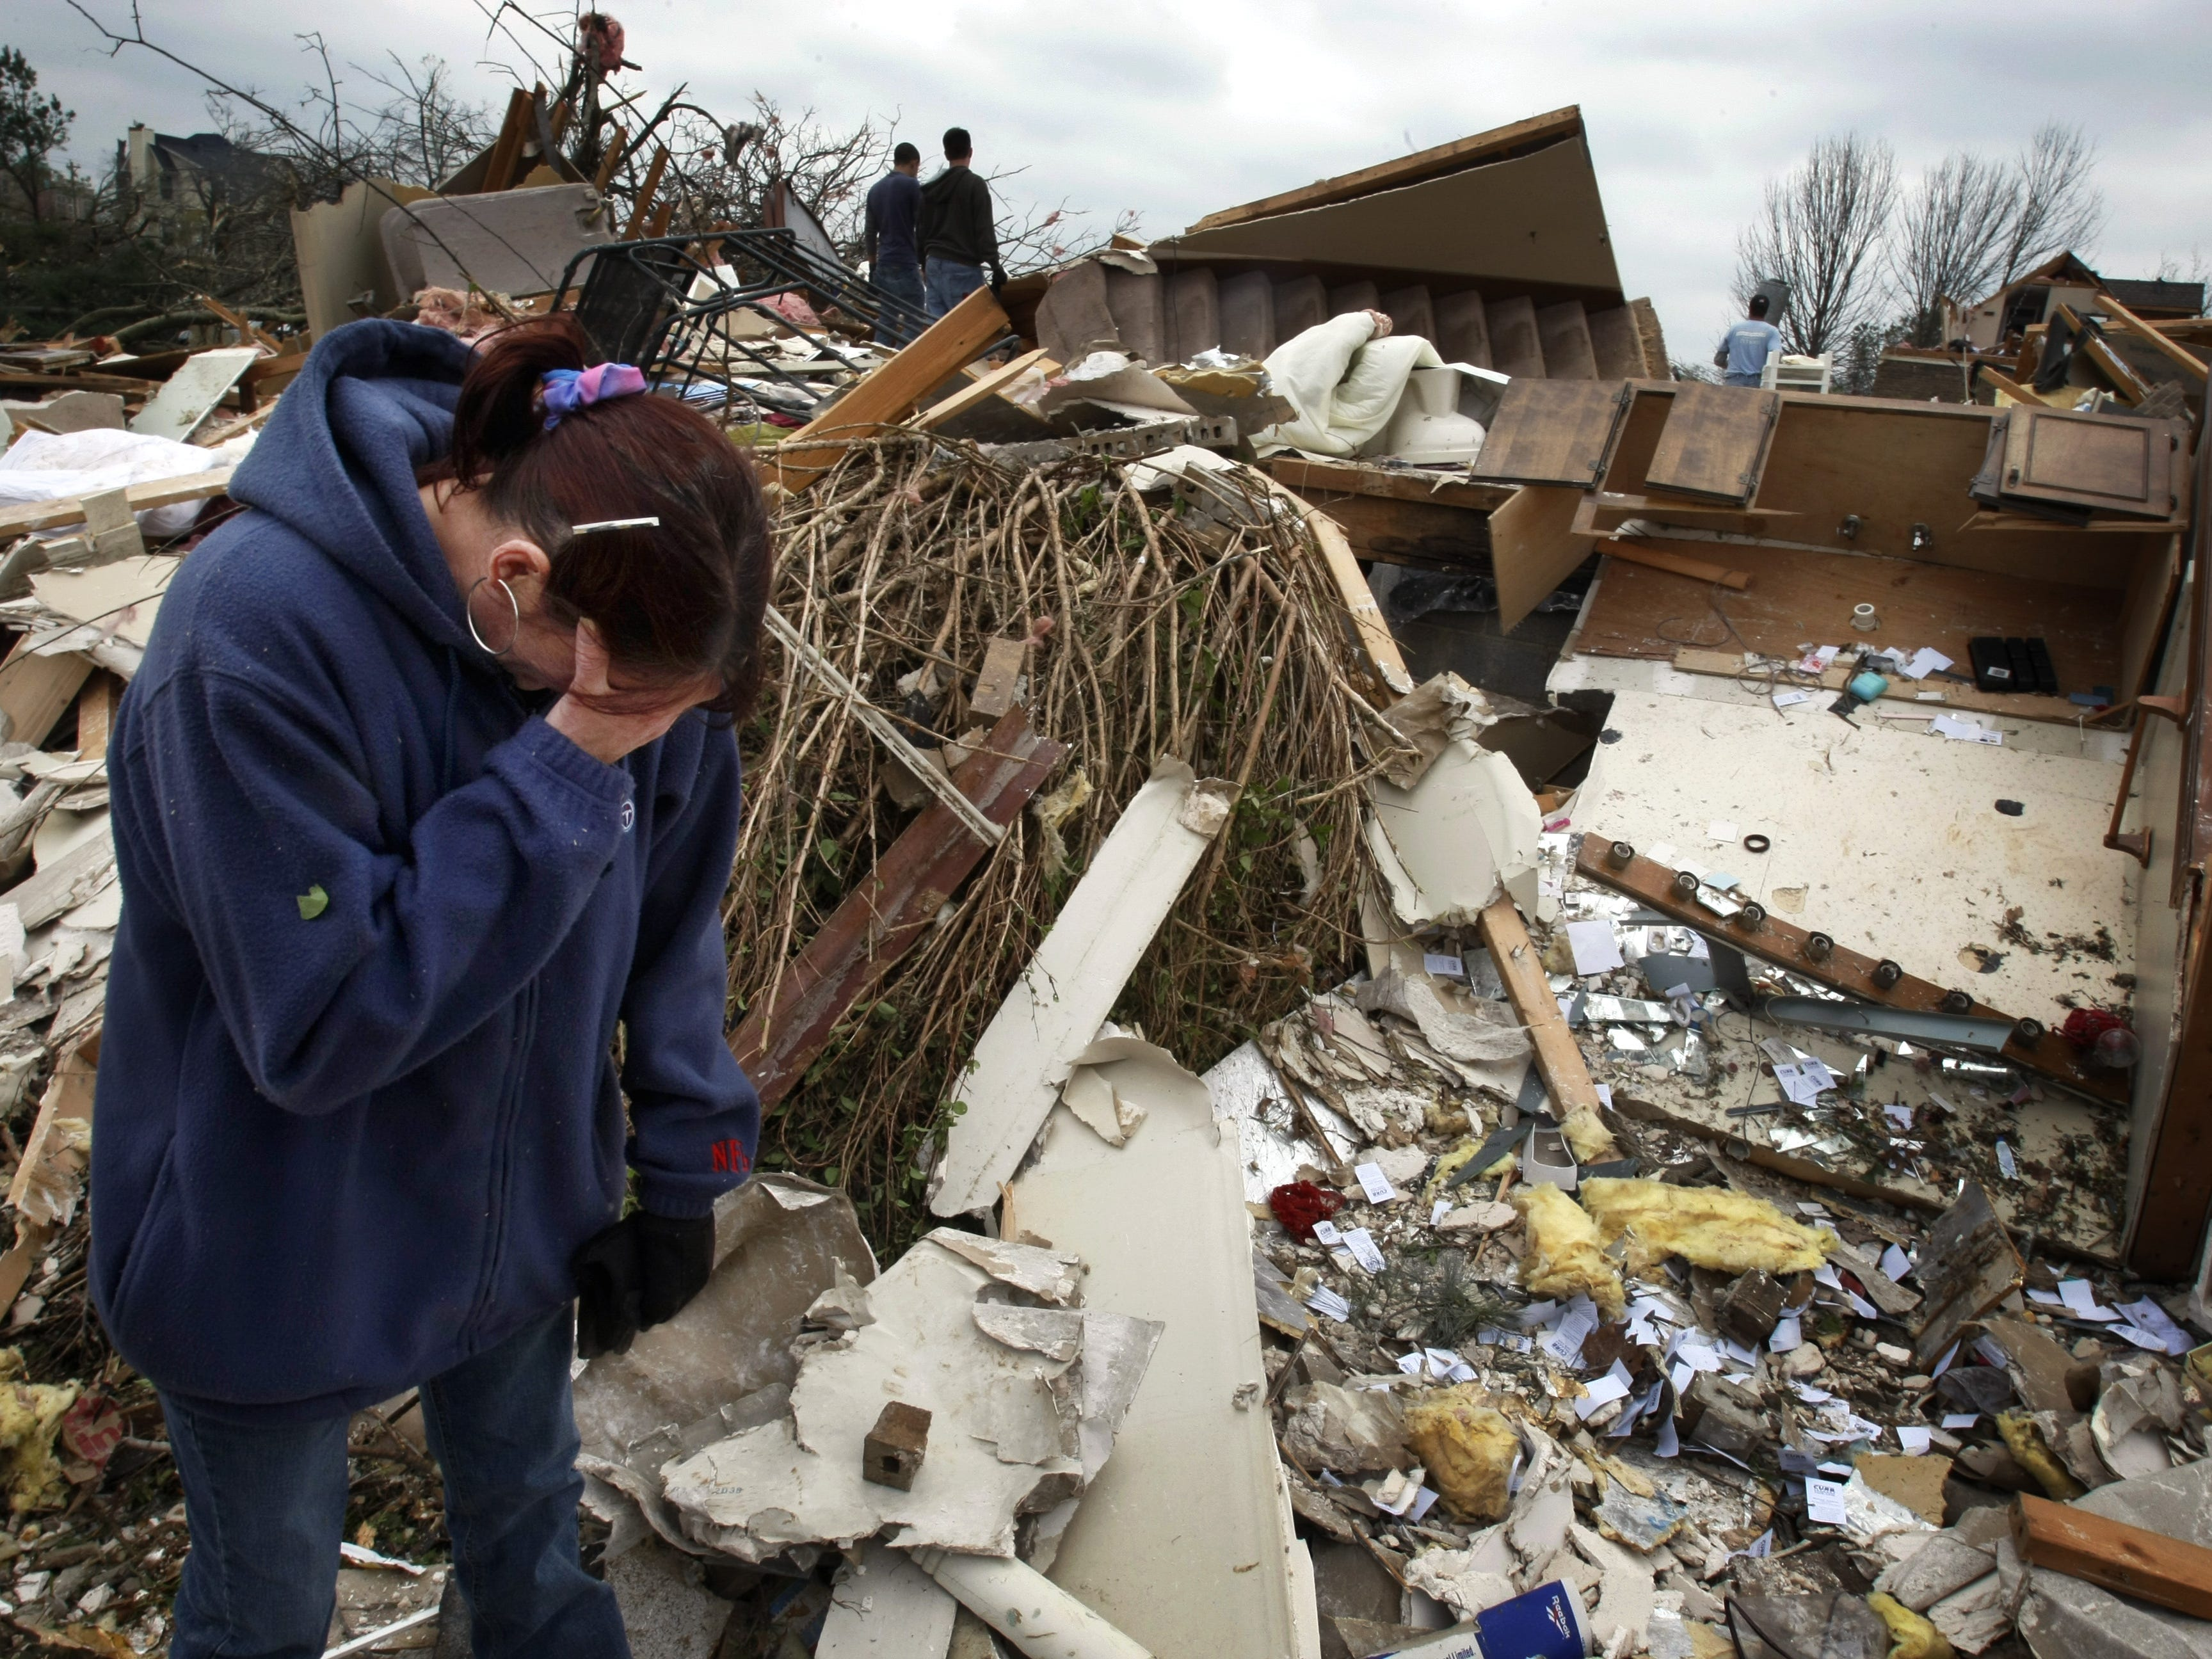 Cheryl Cosco sobs as she pick through the rubble of her home looking for her father's ring that she left on the bathroom vanity. All around her others were picking through what was left, a day after a tornado roared through Murfreesboro.